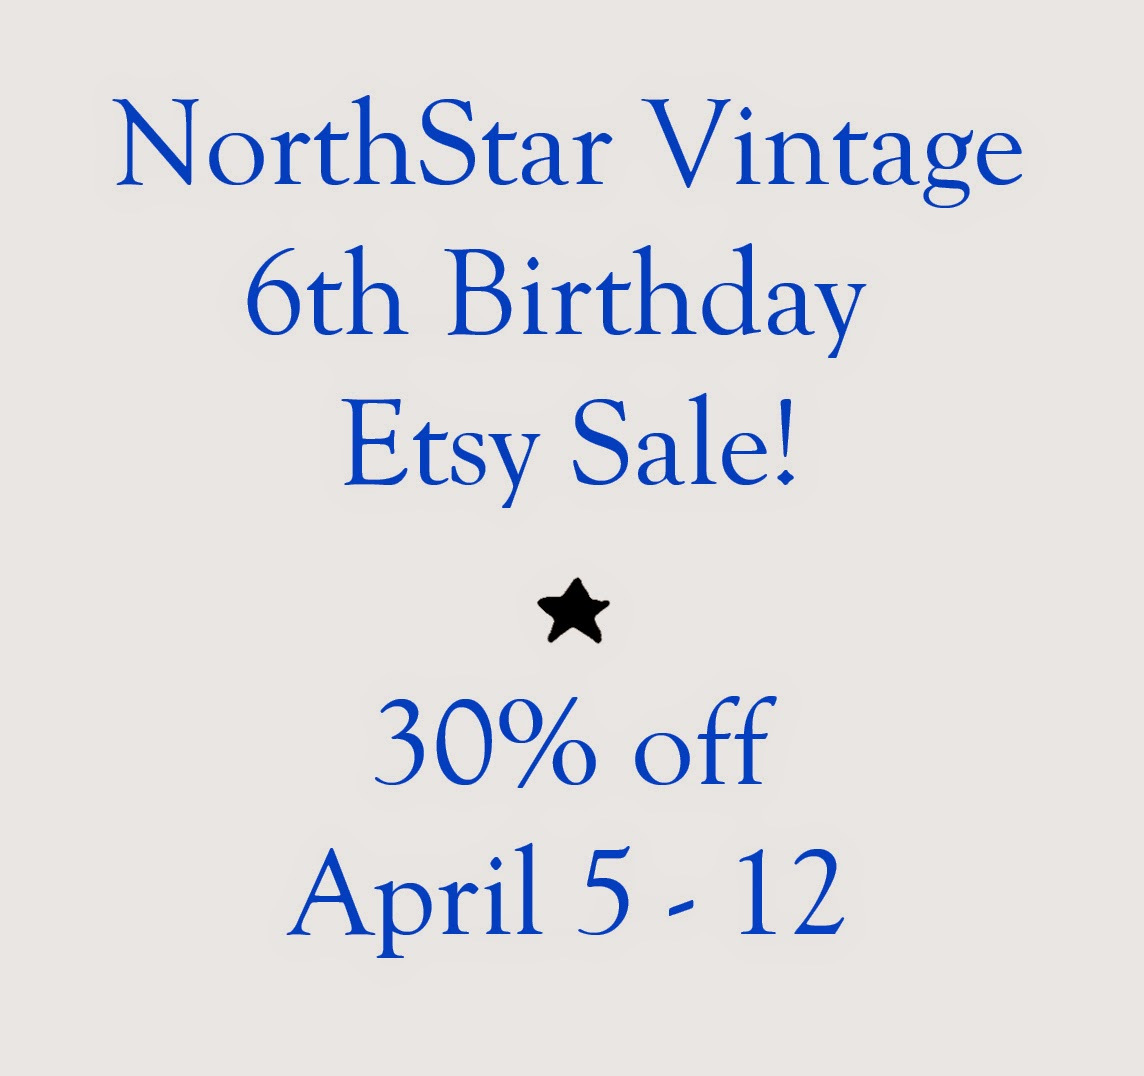 https://www.etsy.com/shop/northstarvintage